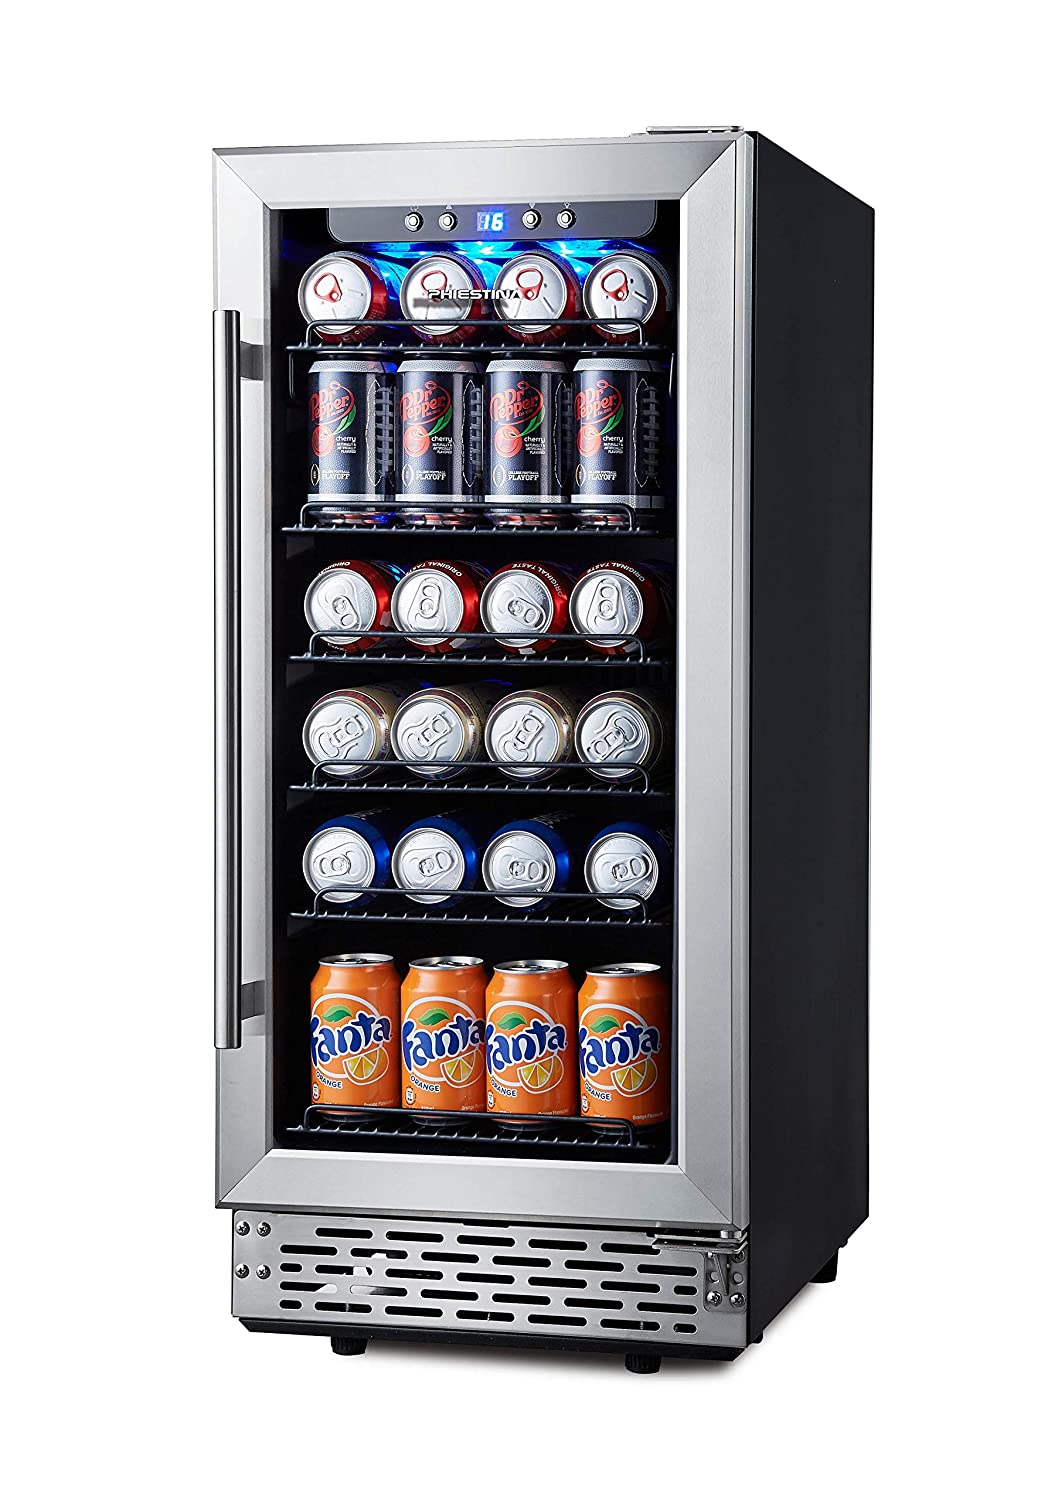 Phiestina 15 Inch Beverage Cooler Refrigerator – 96 Can Built-in or Free Standing Beverage Fridge with Glass Door for Soda Beer or Wine – Compact Drink Fridge For Home Bar or Office